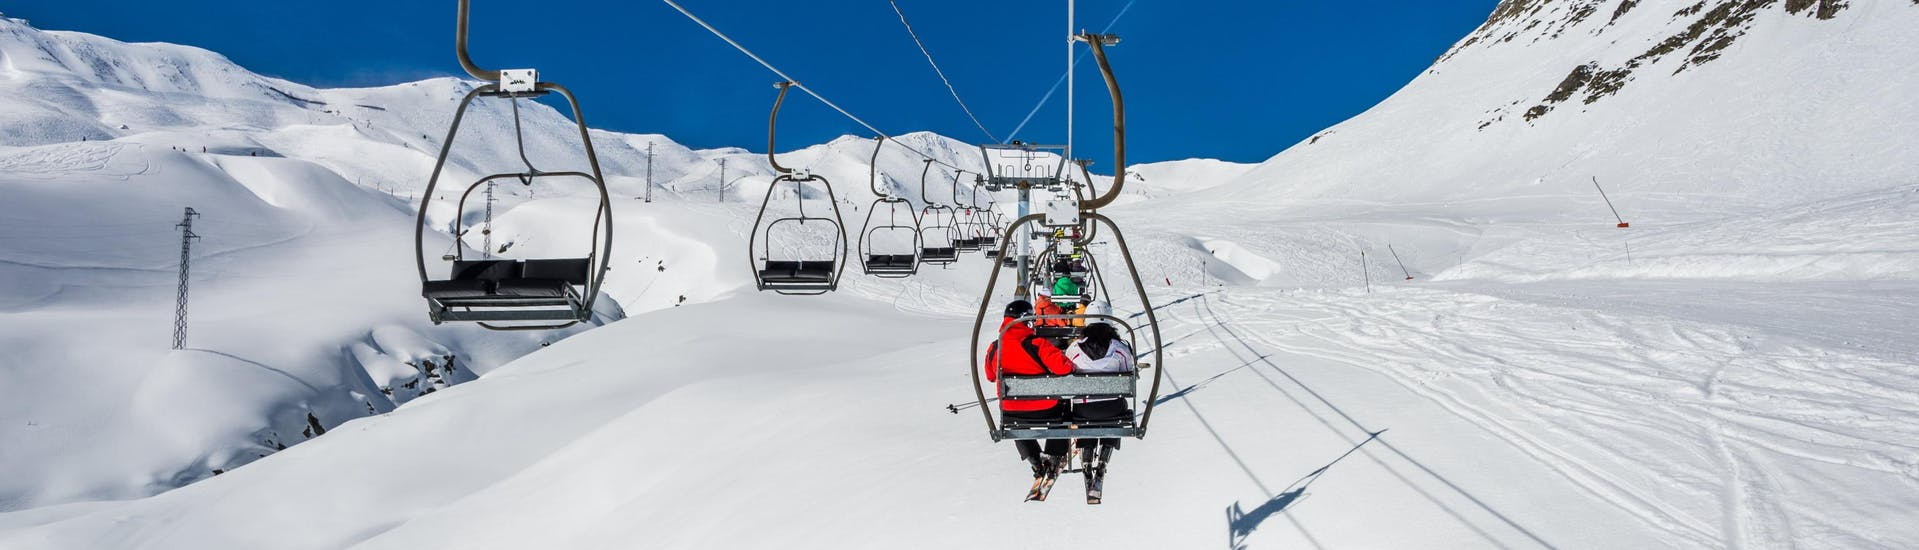 An image of a ski lift carrying skiers to the top of the ski slope in the Spanish ski resort of Formigal, where visitors who want to learn to ski can book ski lessons with local ski schools.